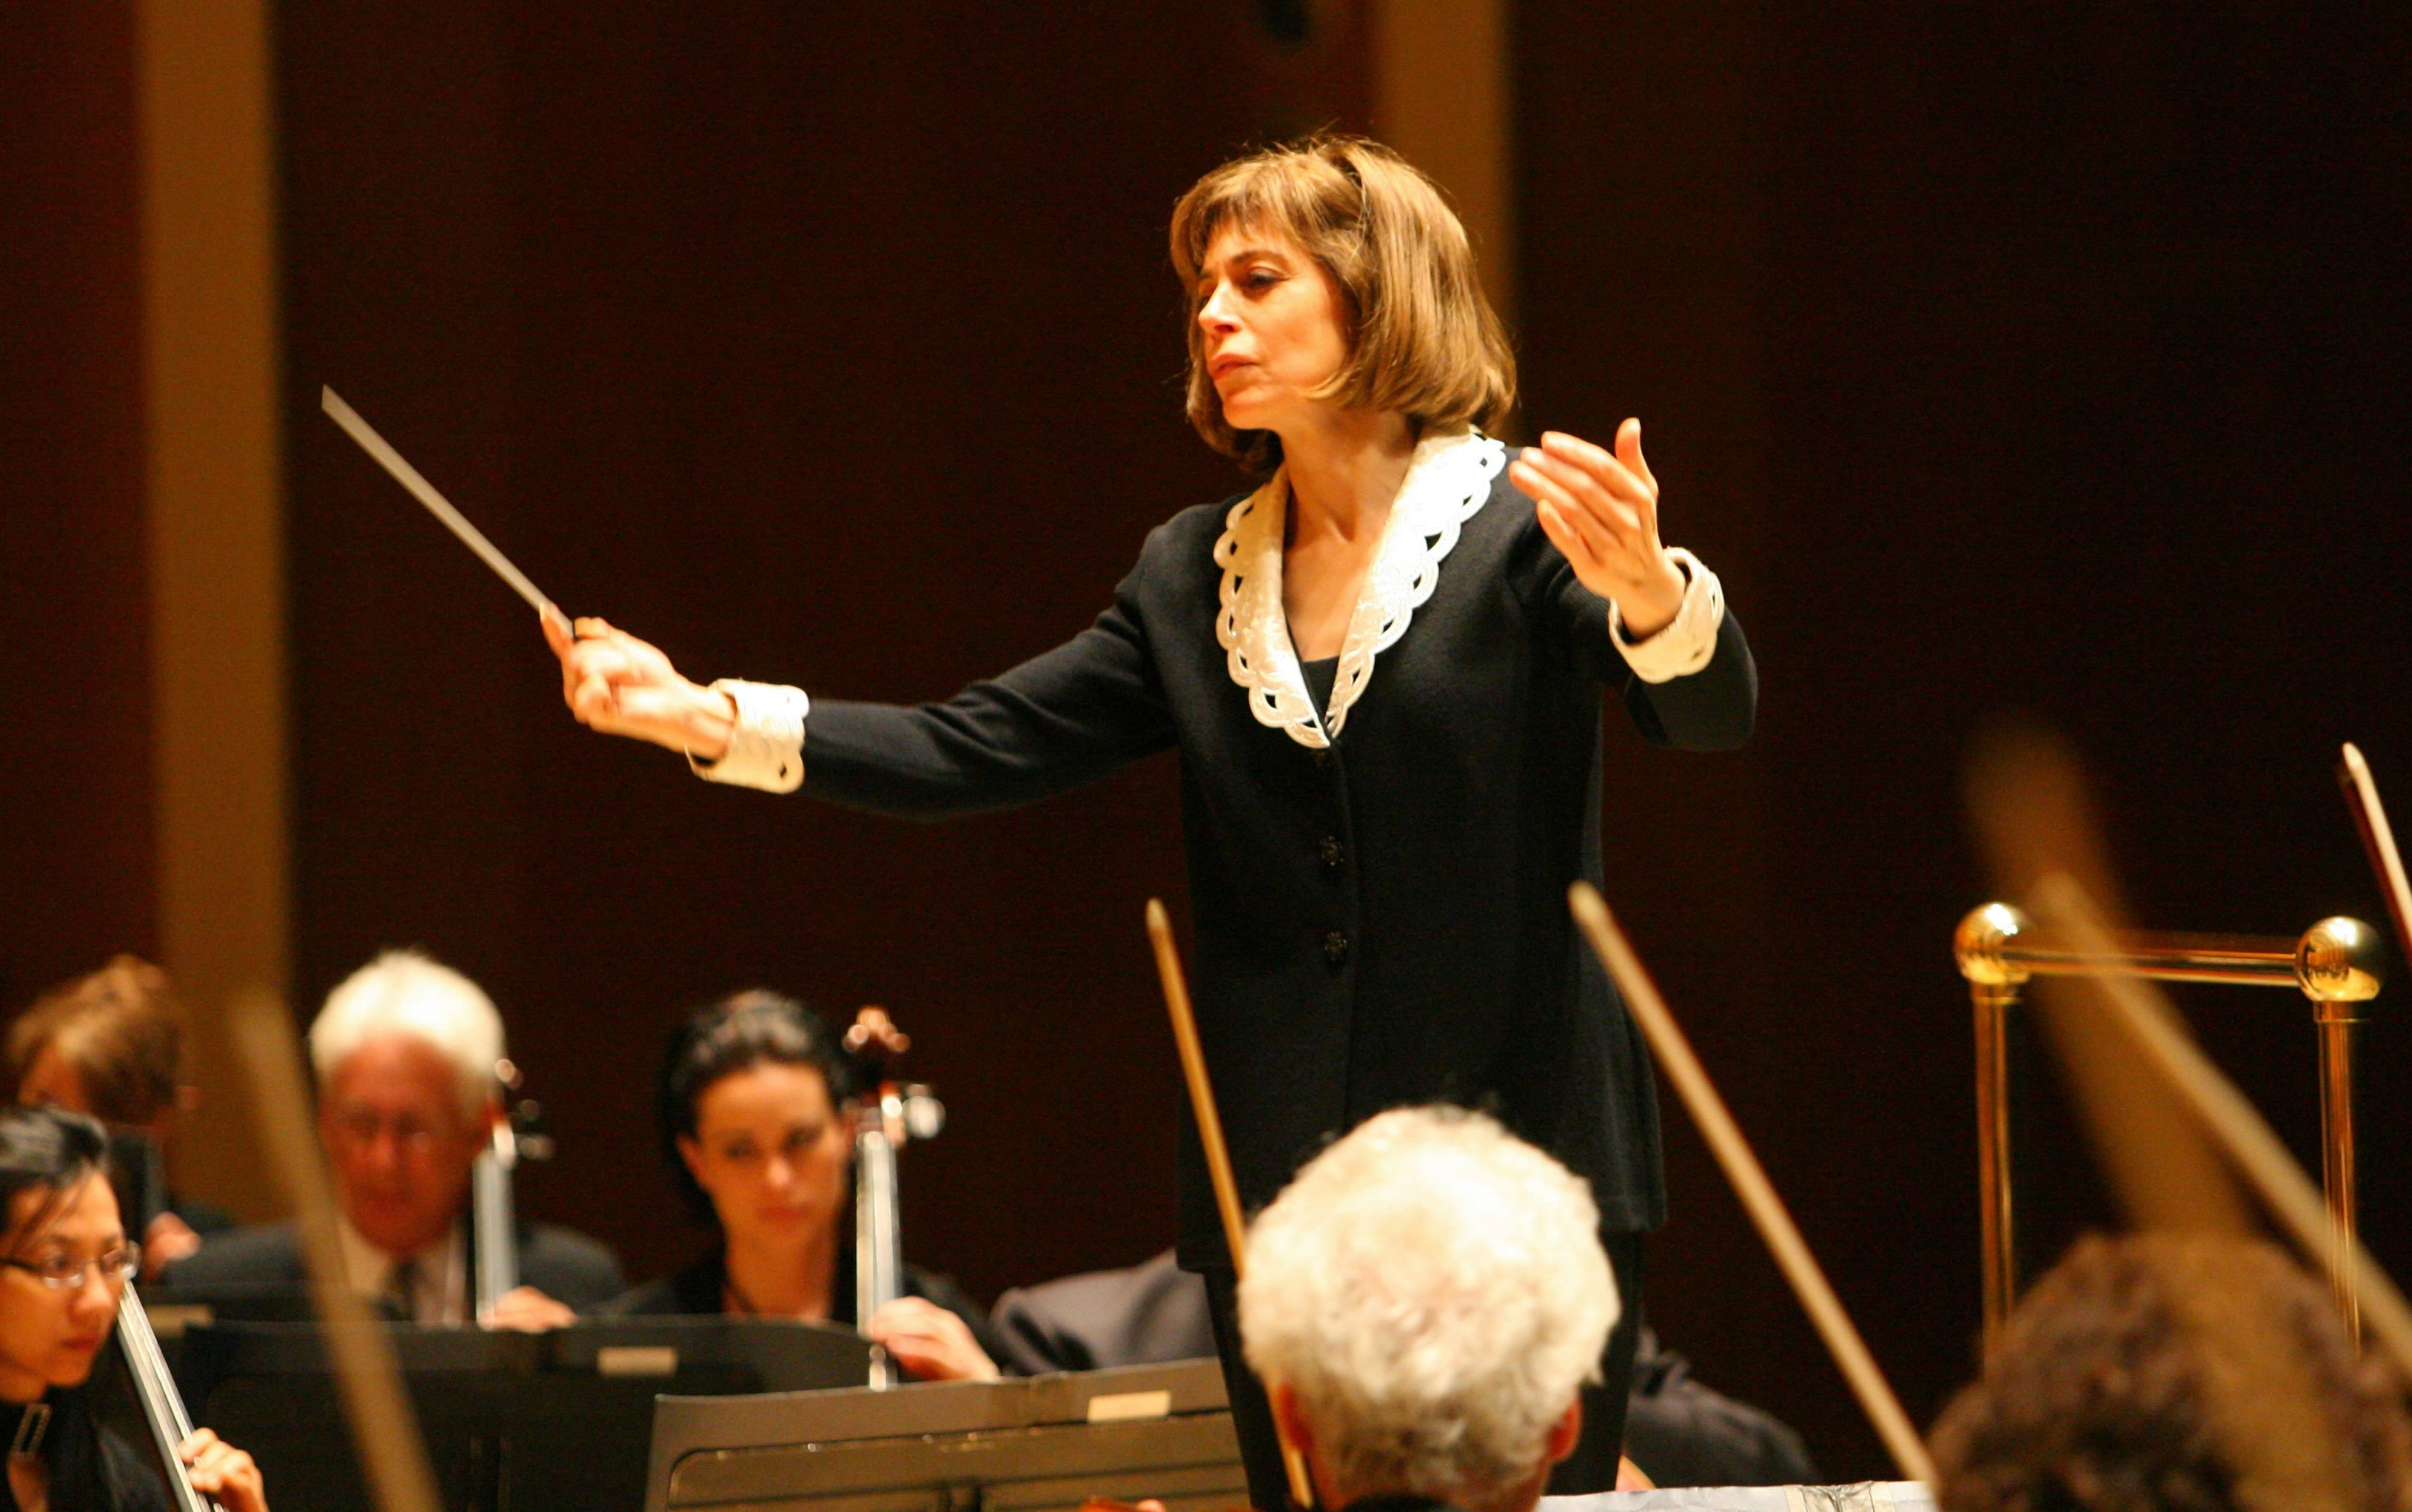 JaAnn Falletta will be inducted into the American Academy of Arts and Sciences (News file photo)